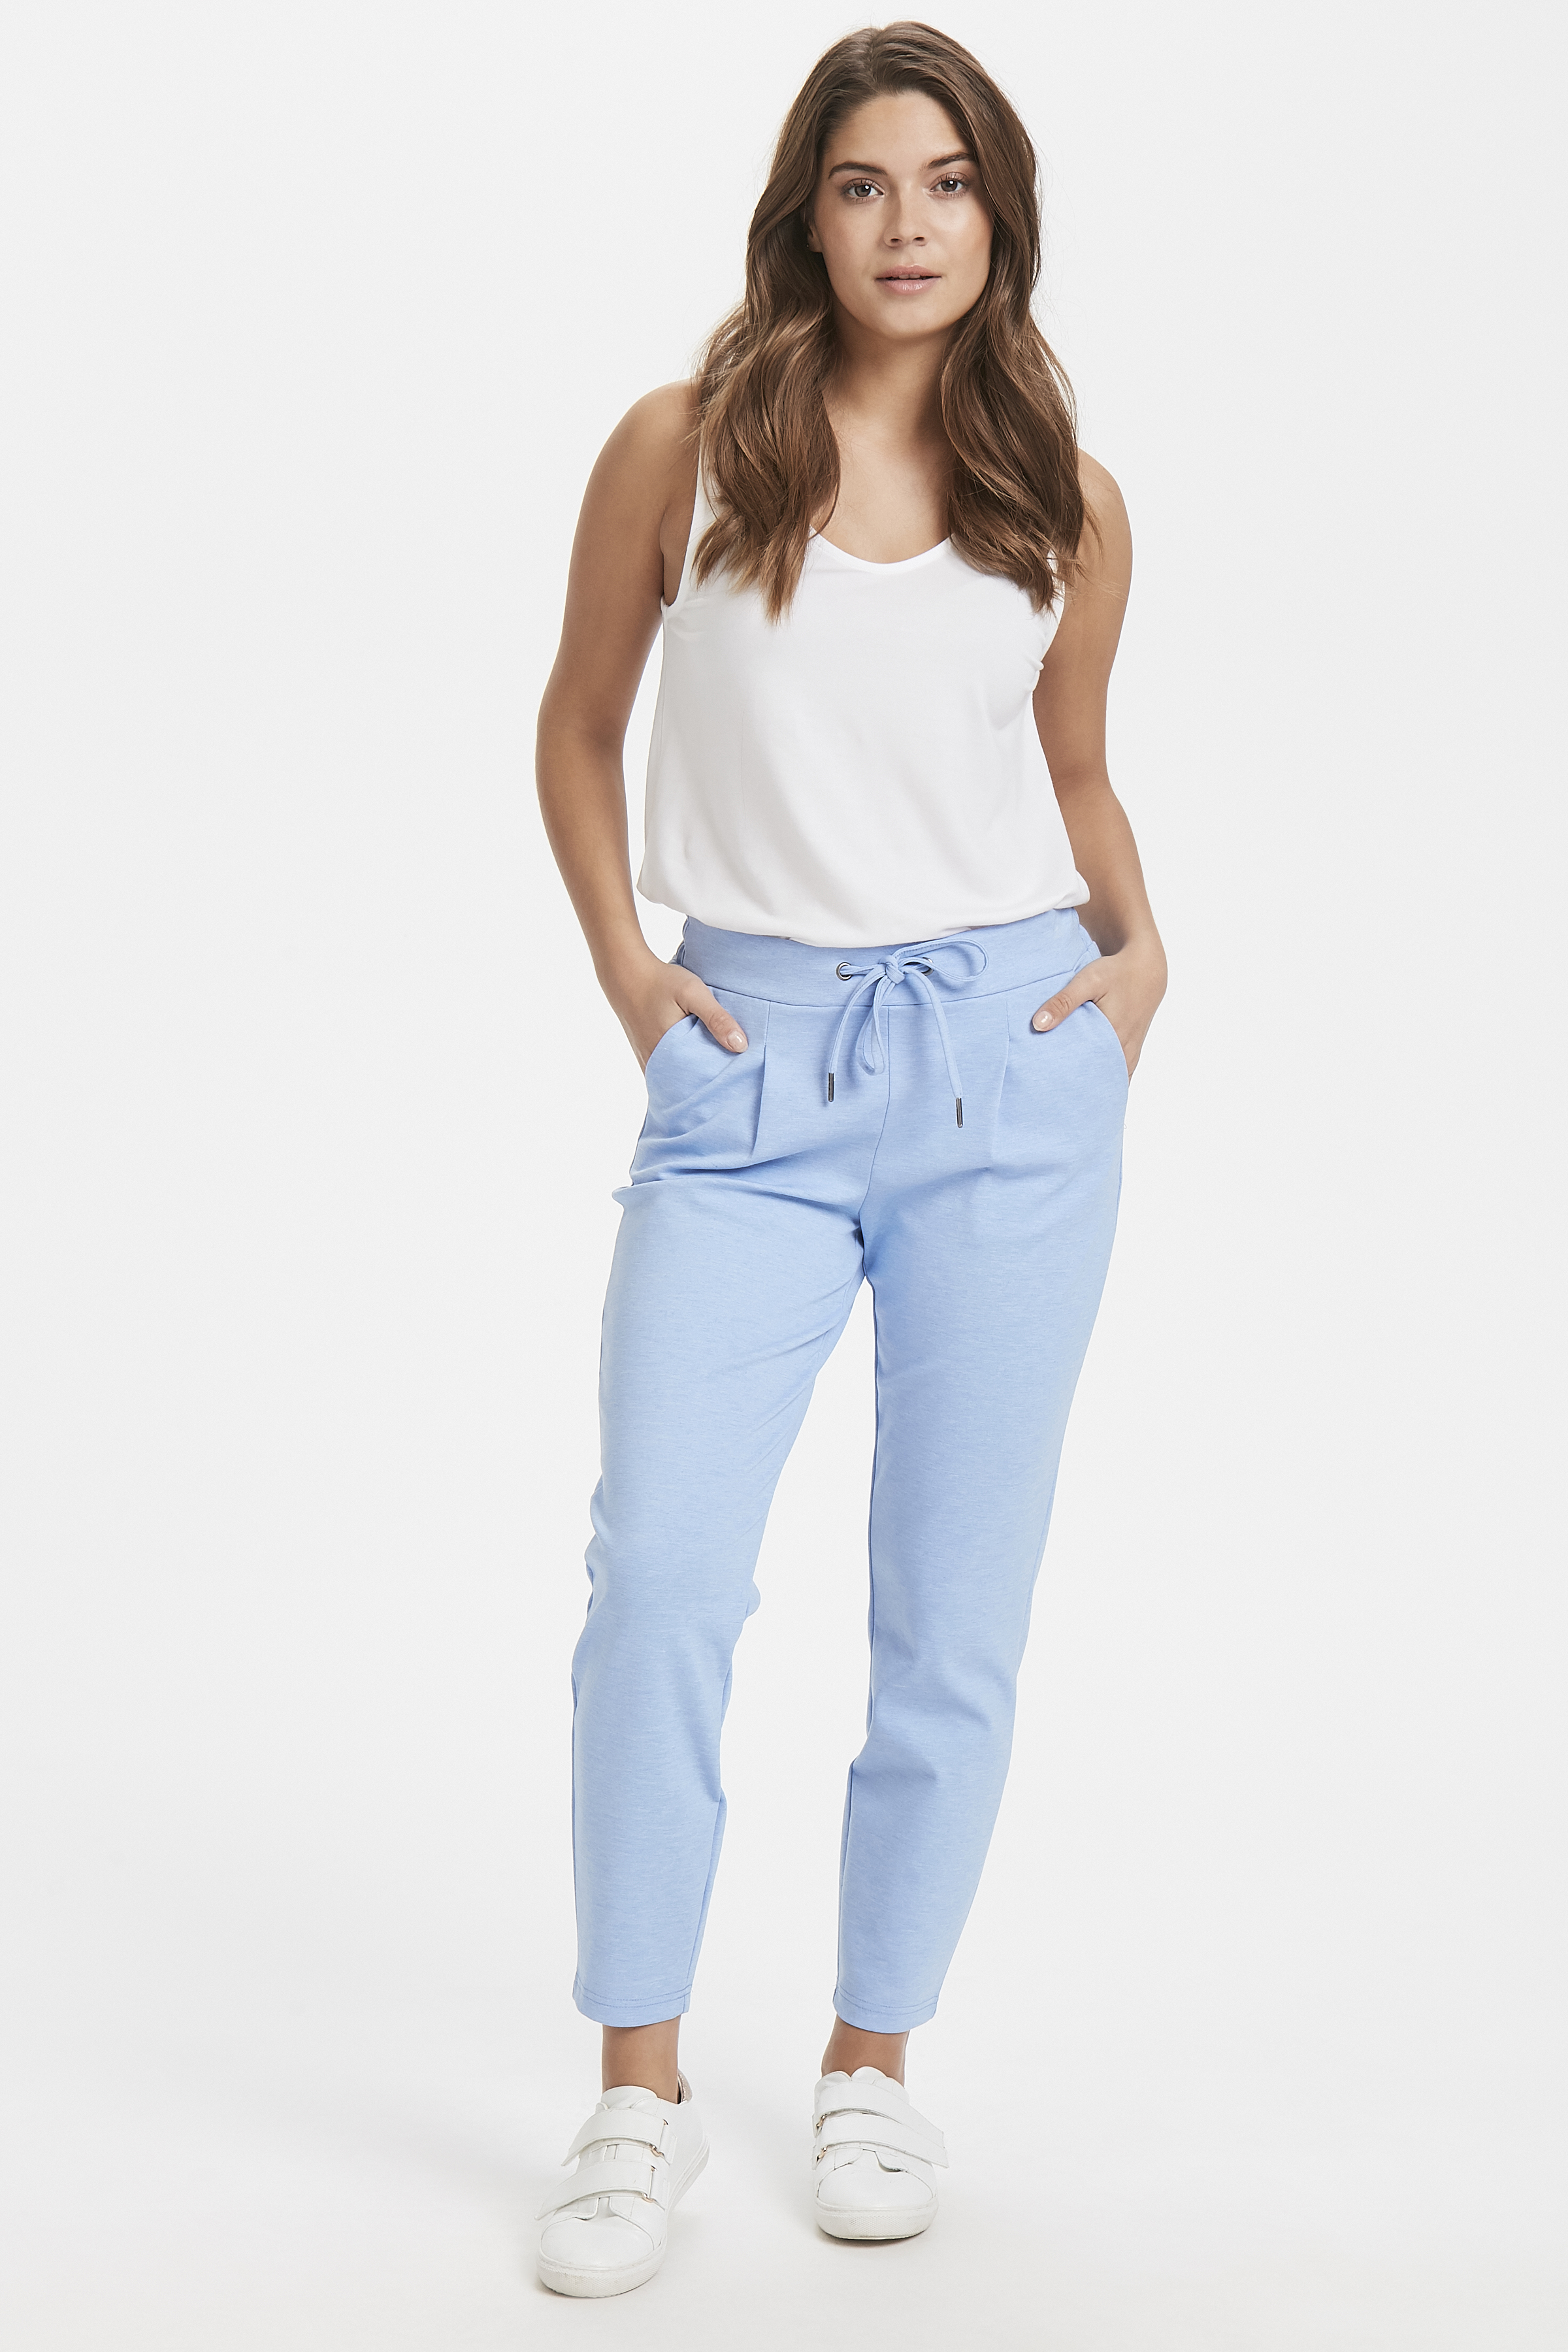 Cornflower Blue Mel. Pants Casual from b.young – Buy Cornflower Blue Mel. Pants Casual from size S-XXL here